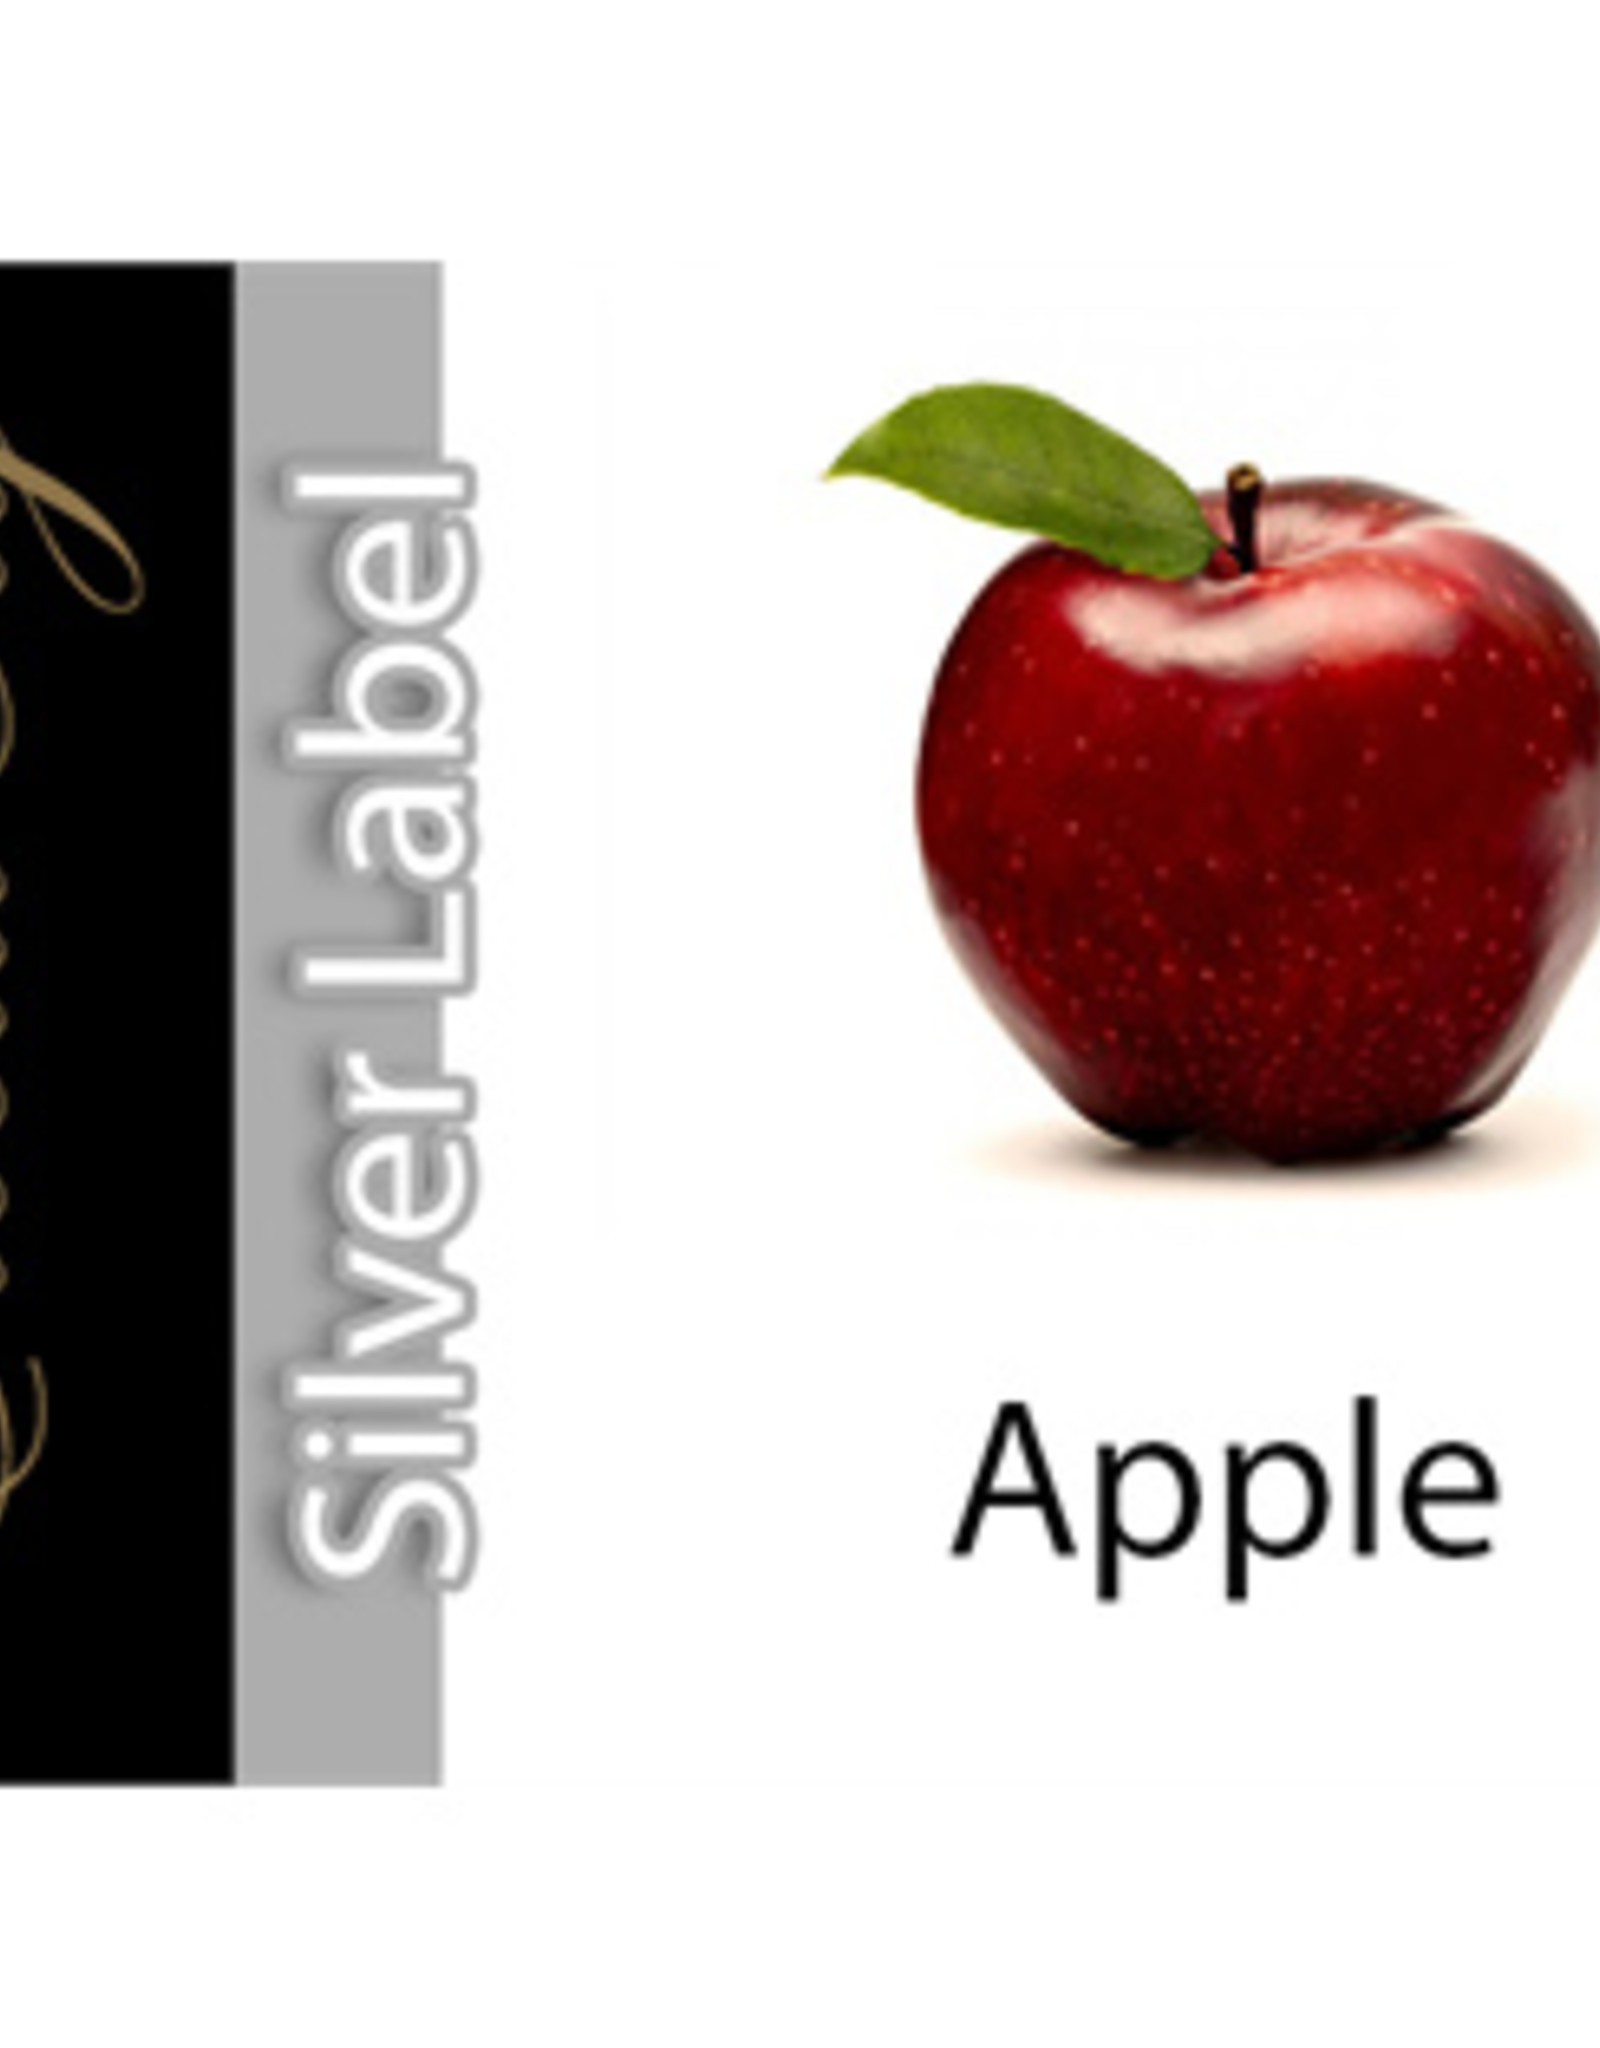 Exclucig Exclucig Silver Label E-liquid Apple 18 mg Nicotine